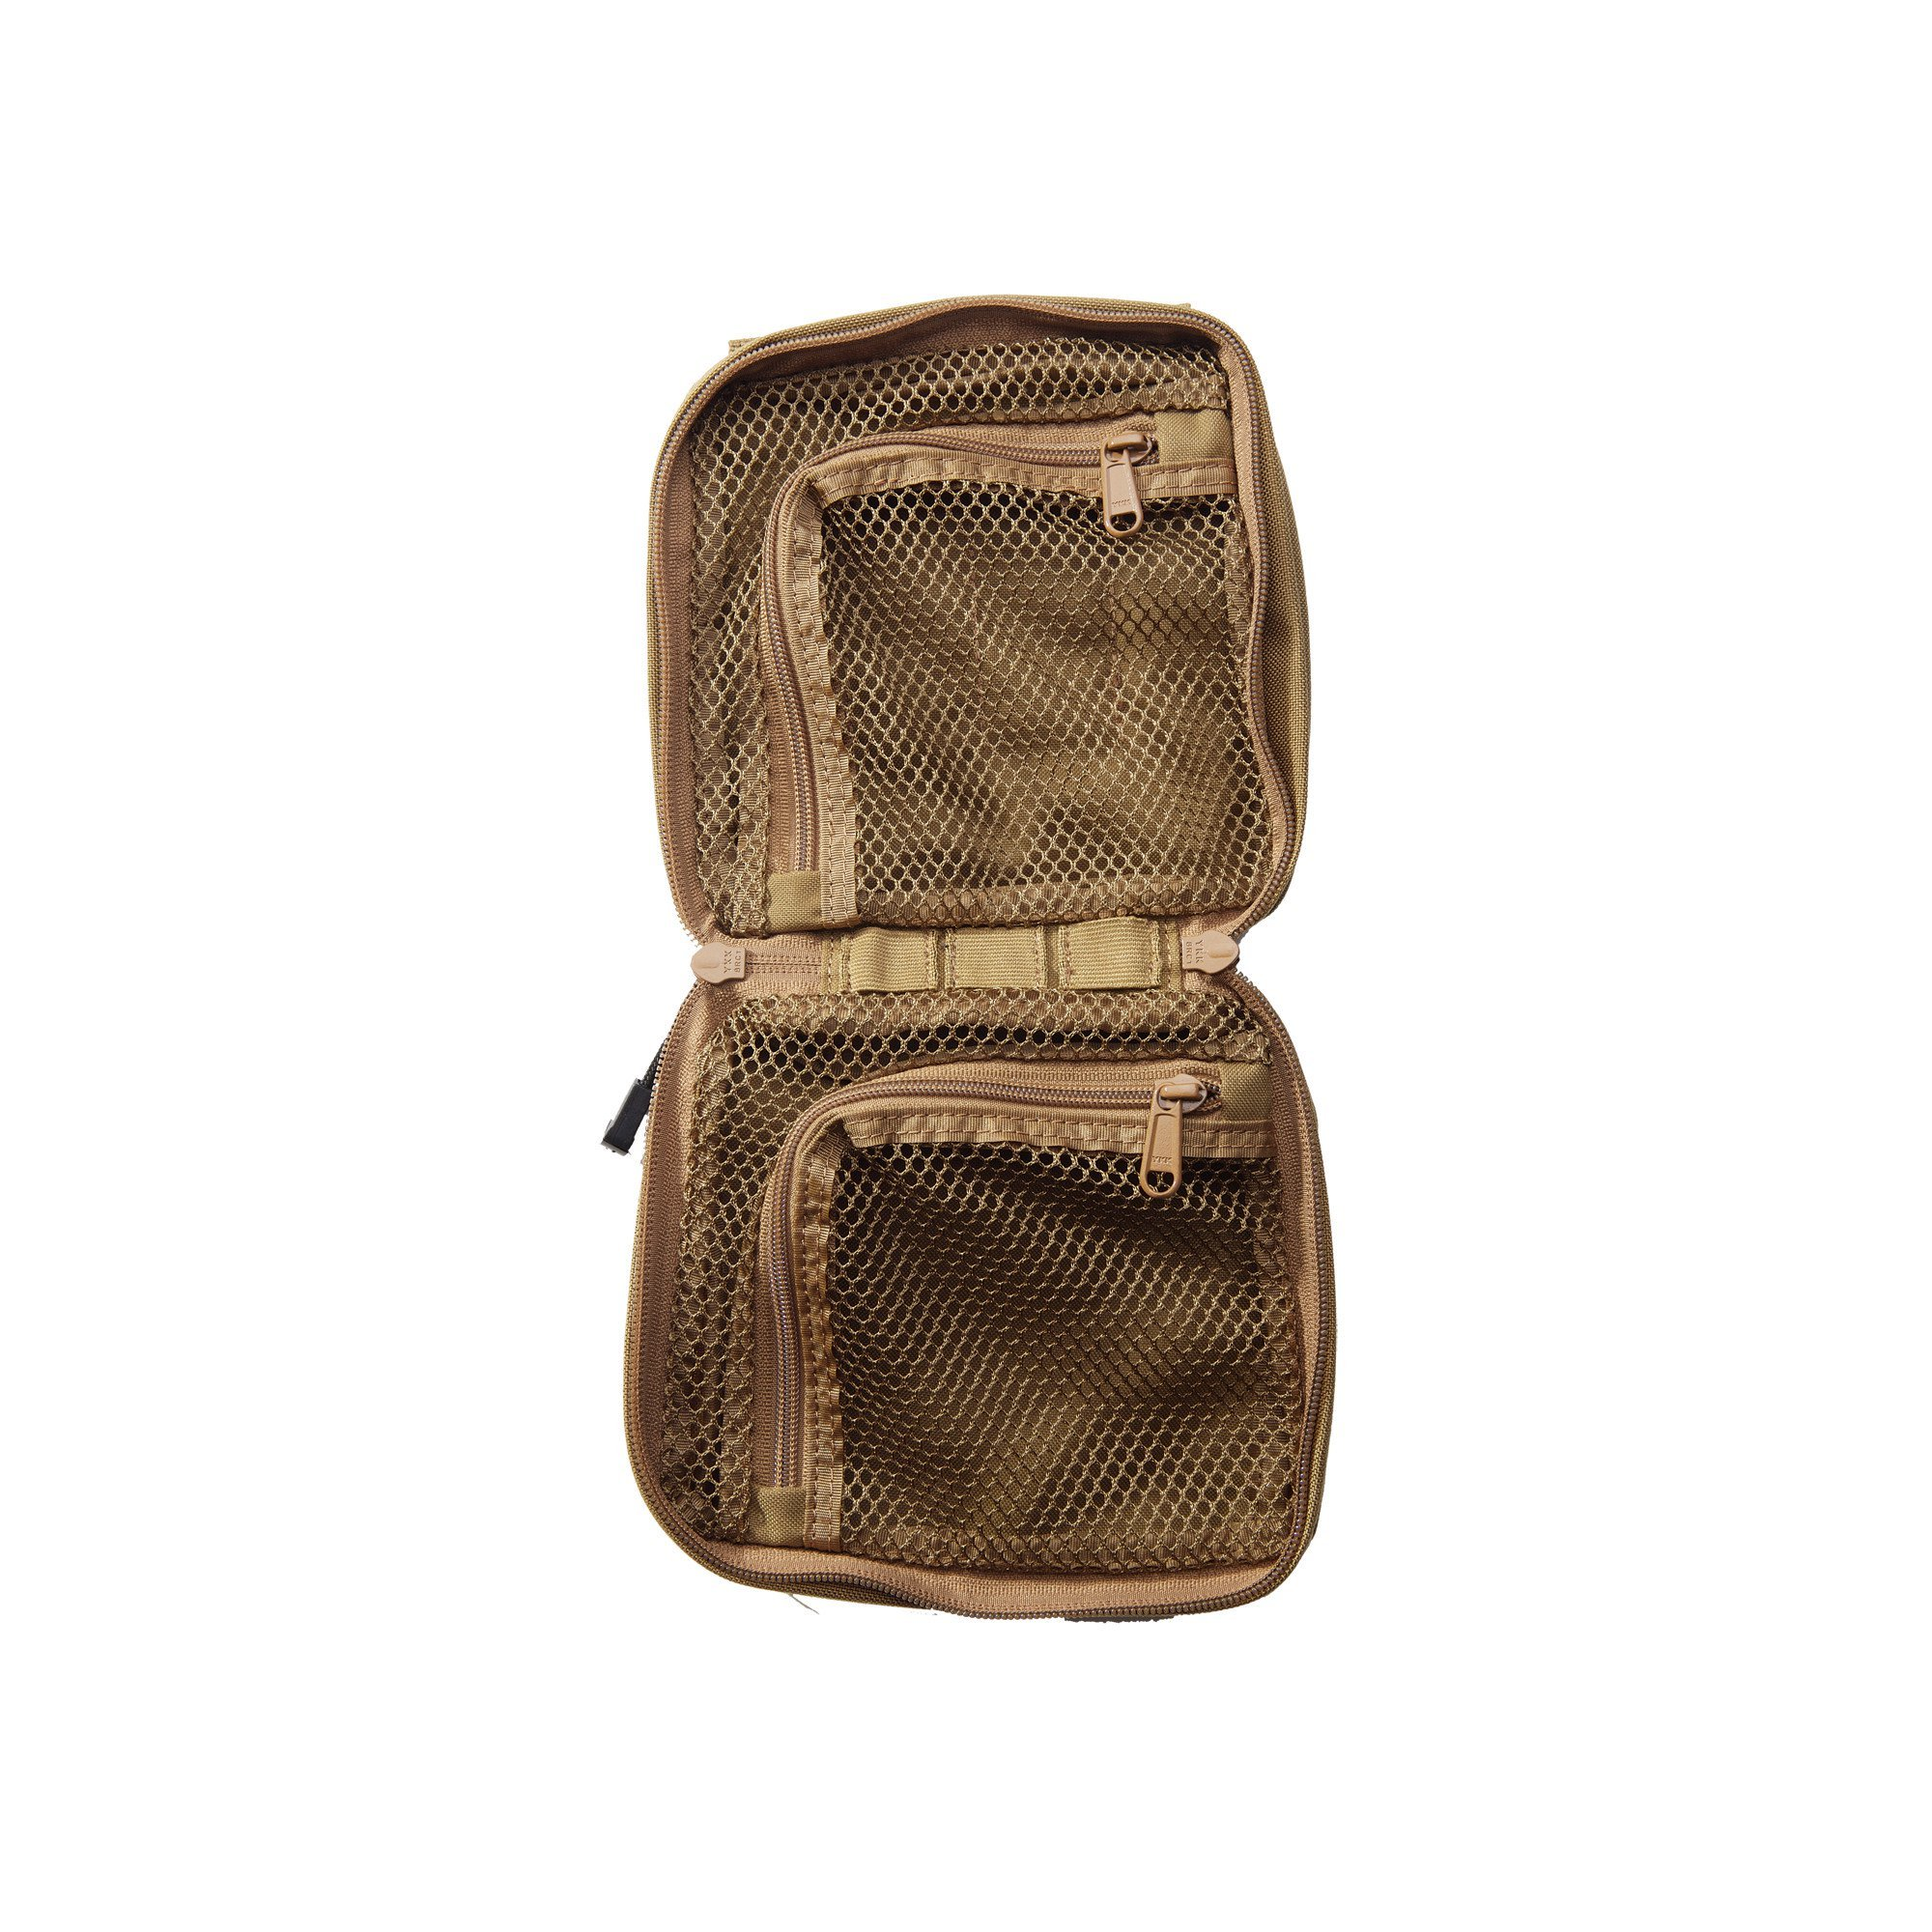 6 X 6 MED POUCH – Sandstone